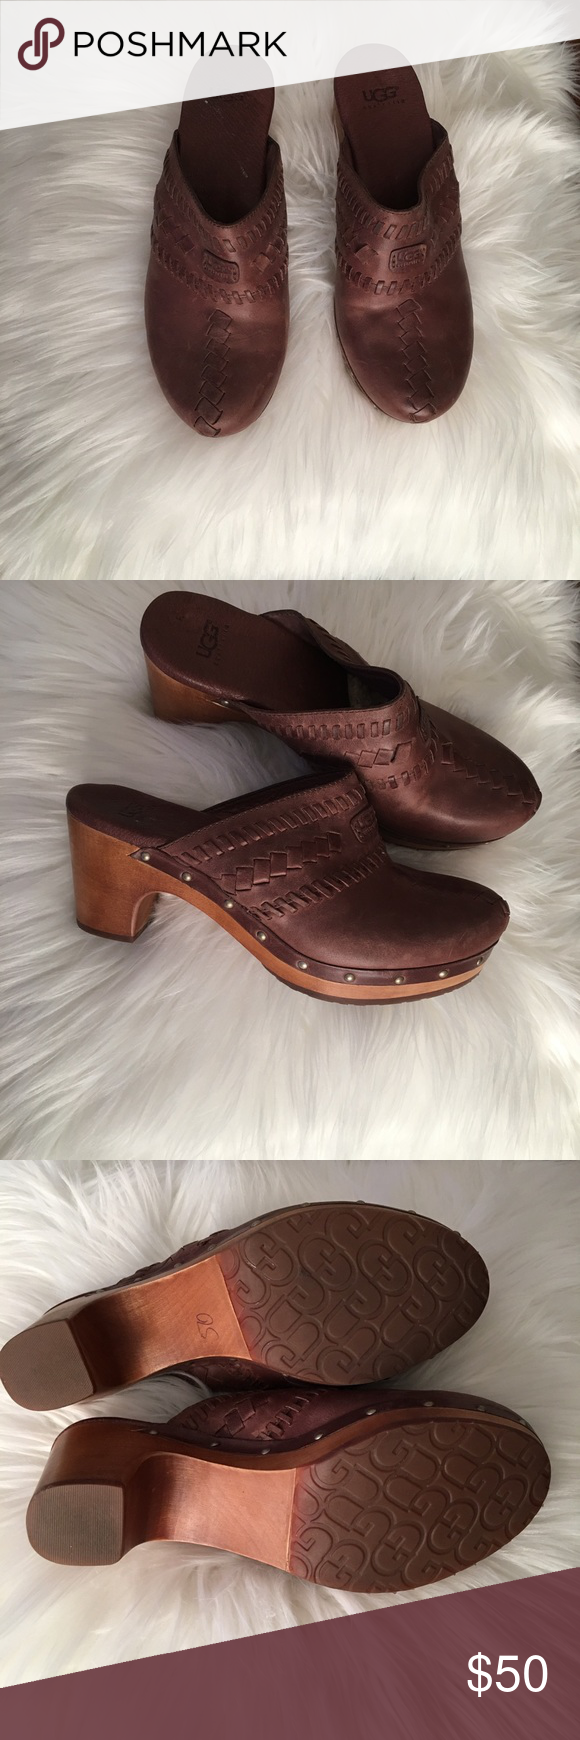 69093cdec89 New leather clogs, just a flaw due to storage 100% leather, genuine ...